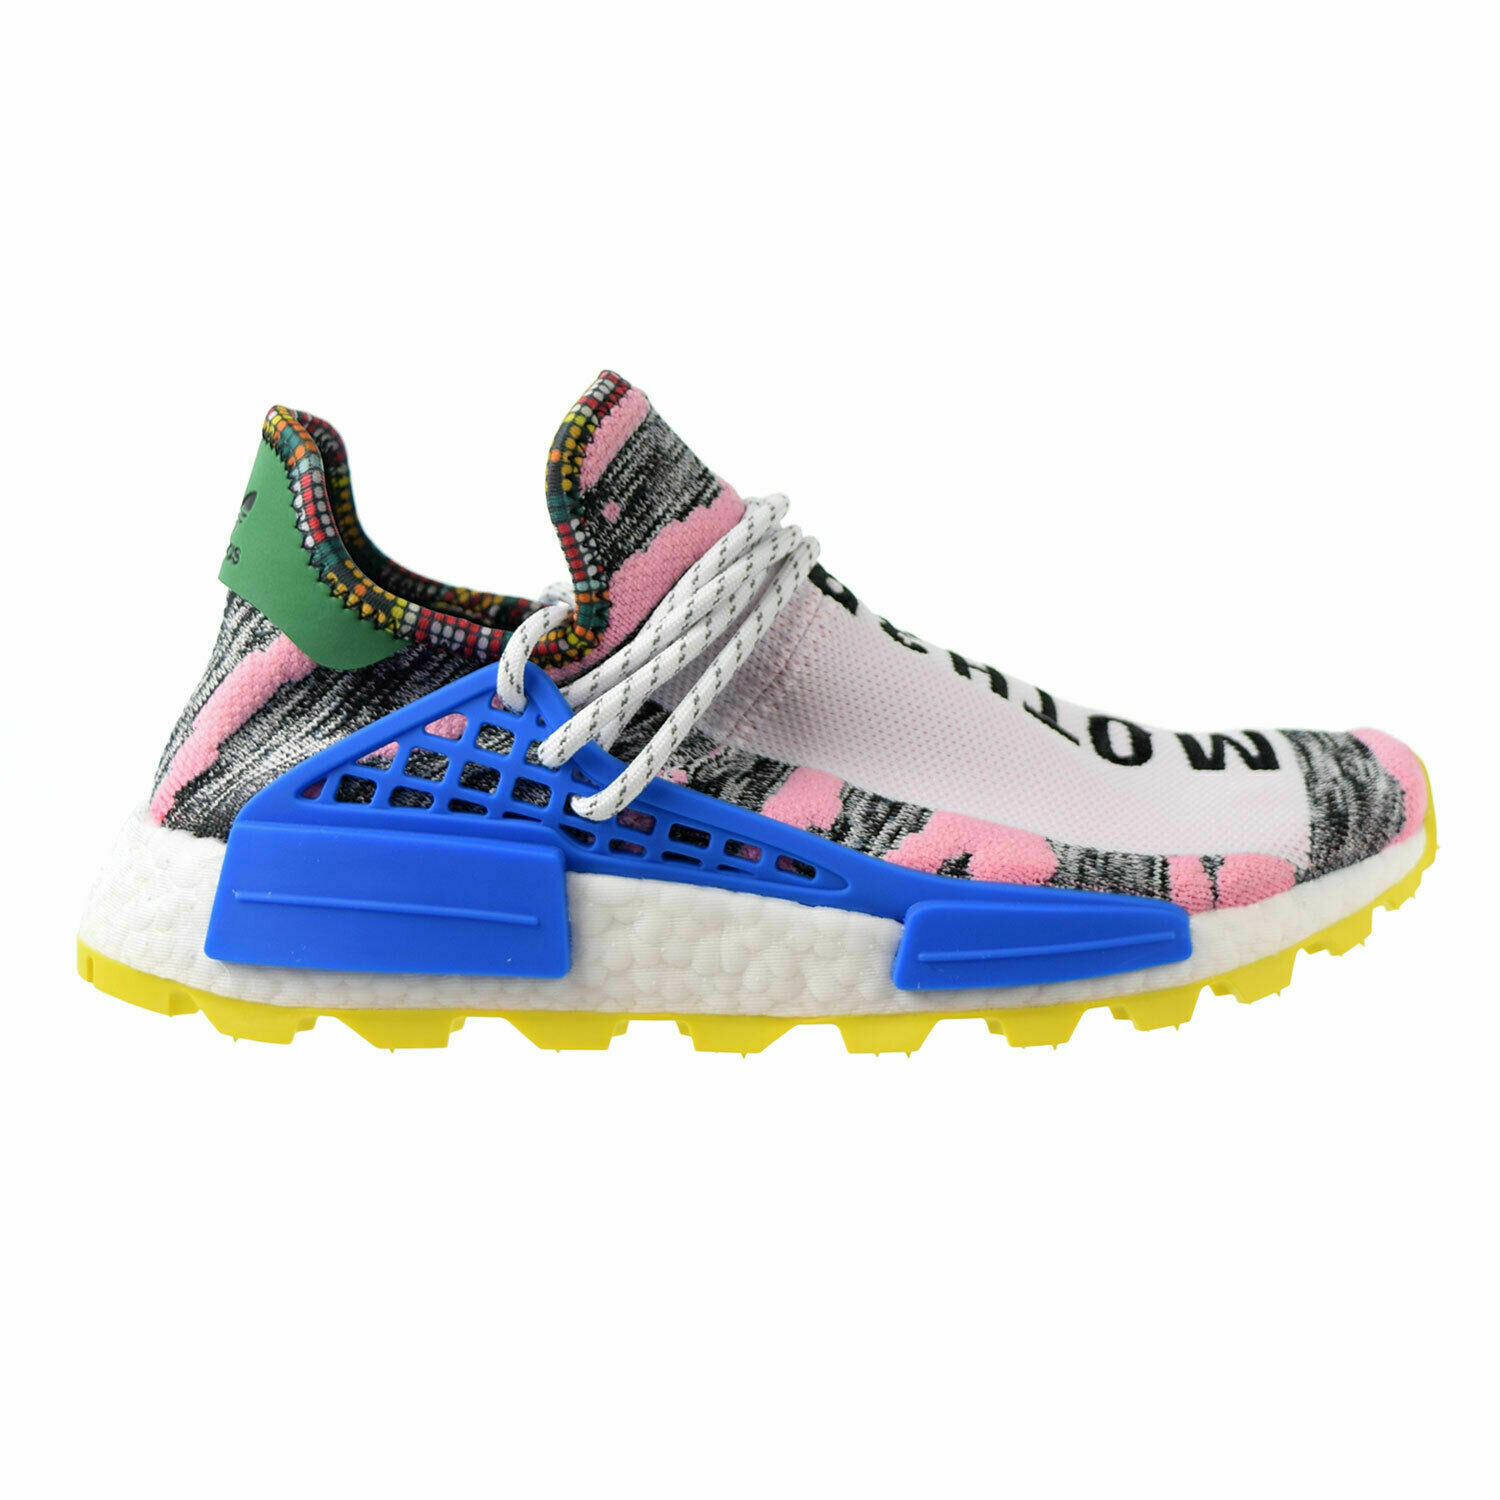 competitive price a7c1c 5fffd {BB9531} Adidas x PW Solar Pack Hu NMD Pharrell Williams Human Race Mother  *NEW*